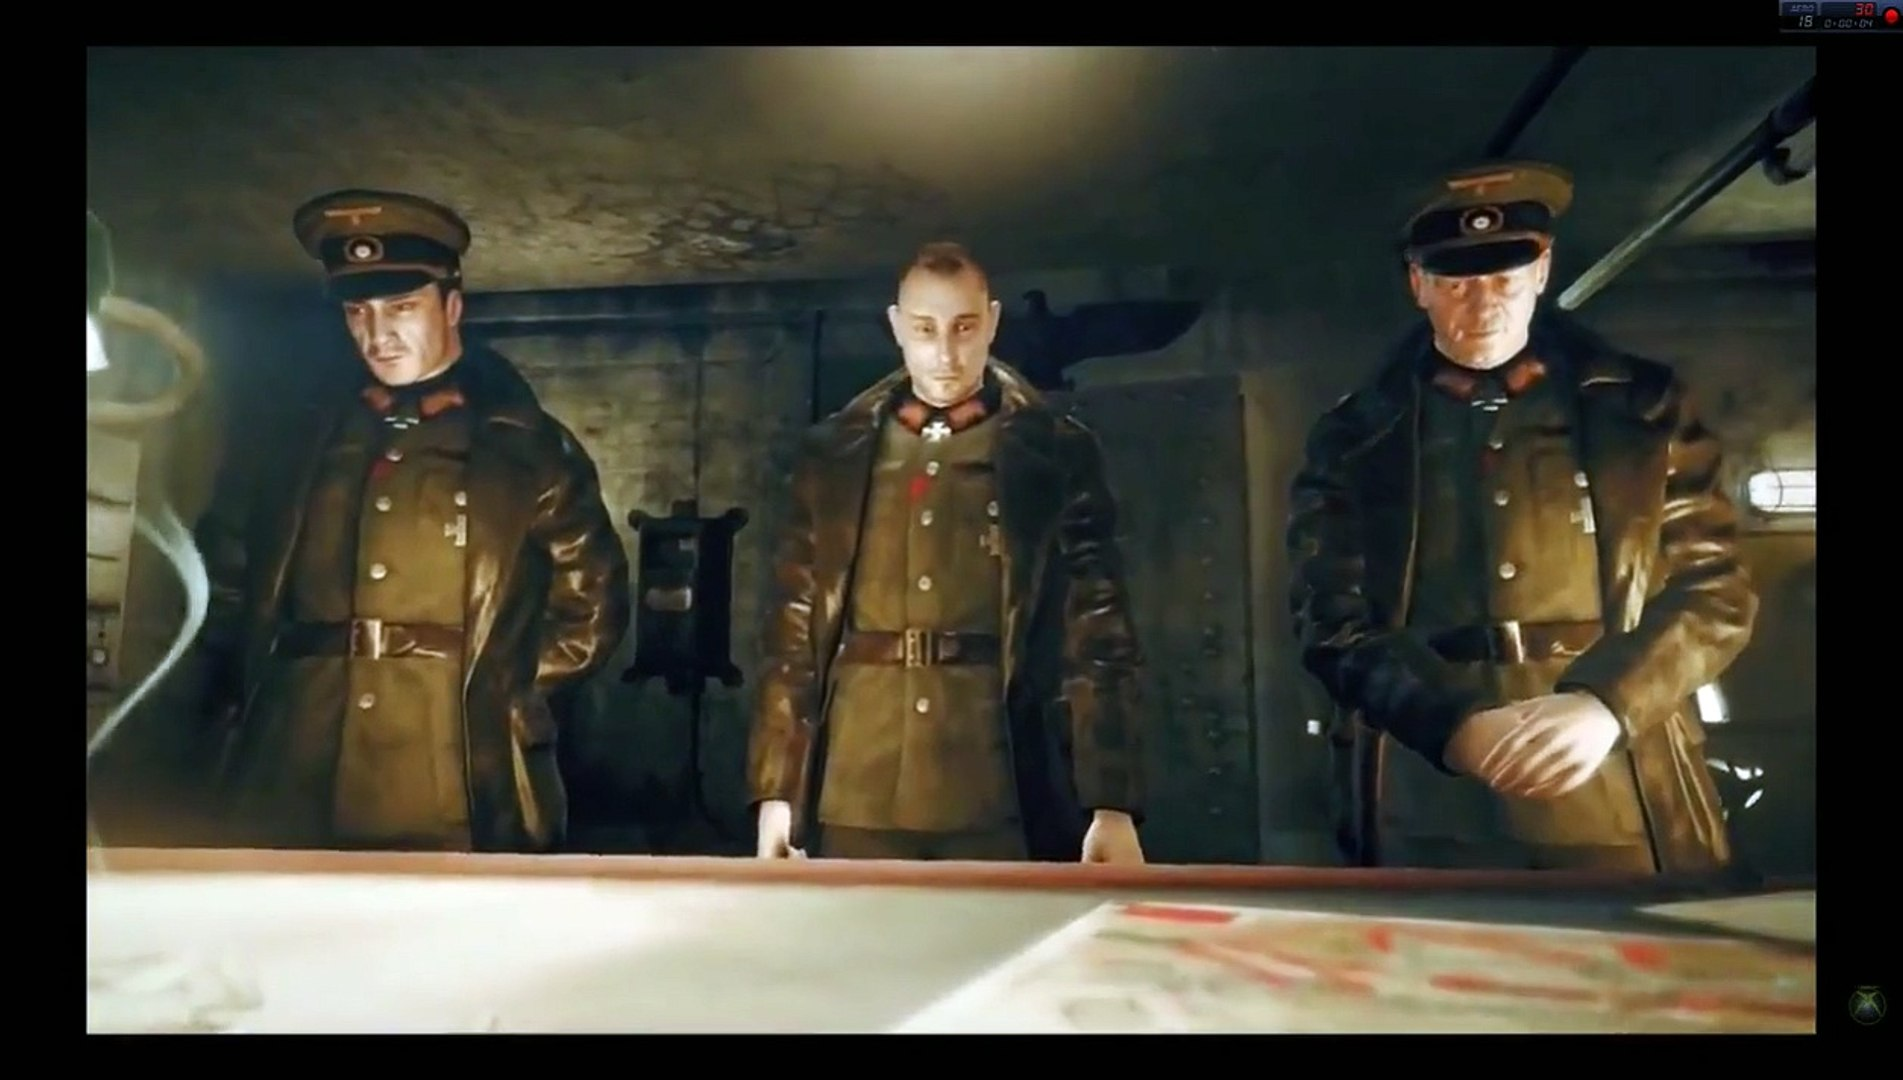 Sniper Elite  - Video Game - War Game - Strategy Game -  Action Game - Shooting Game